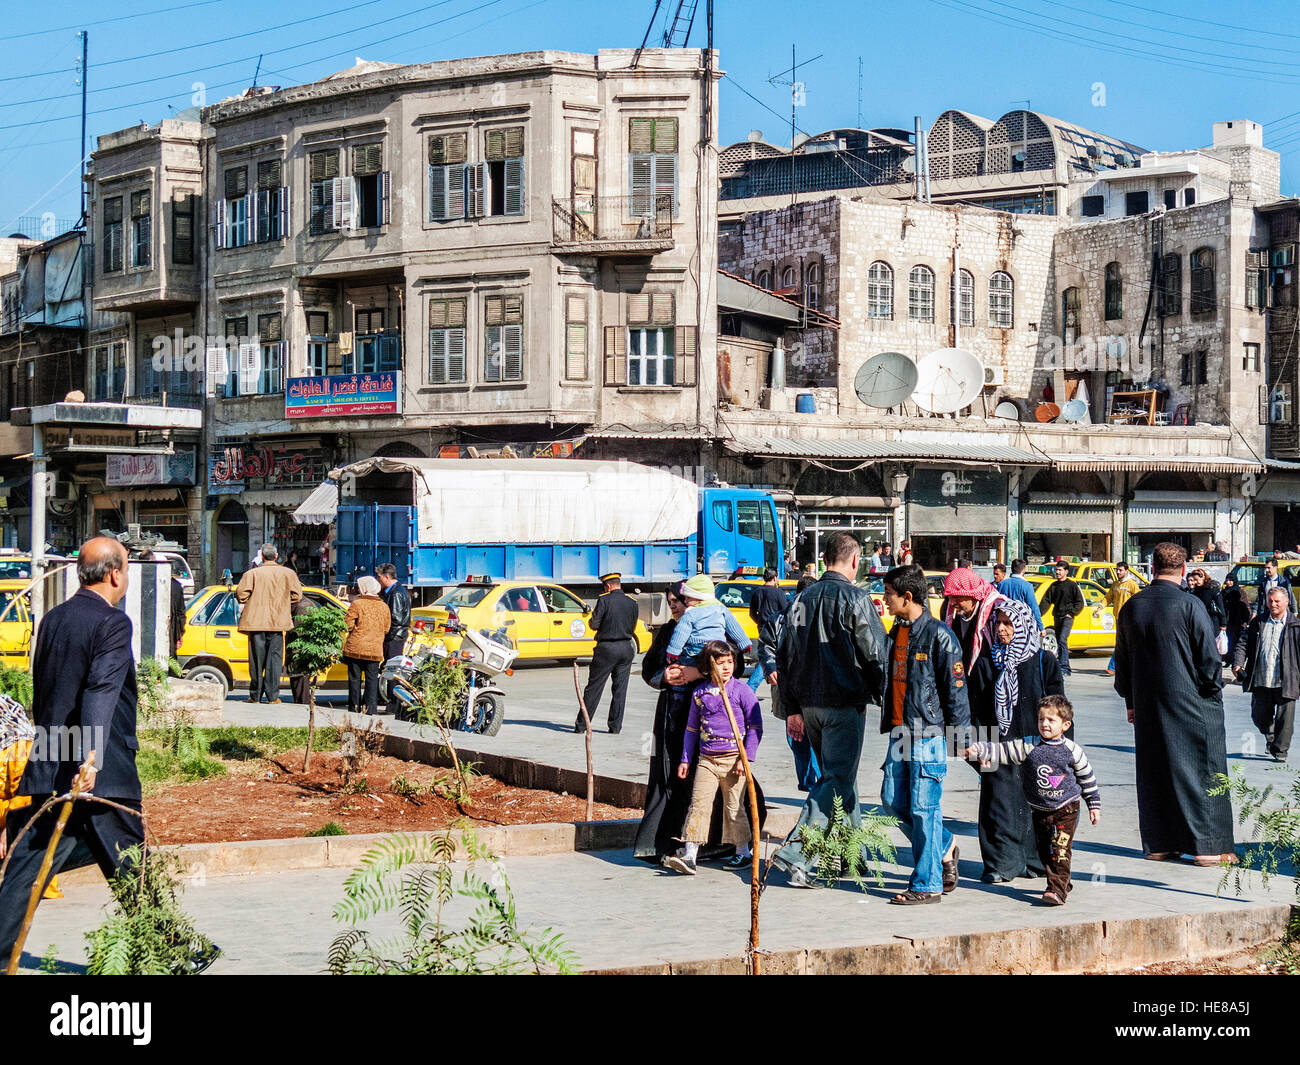 street view in central old aleppo city in syria Stock Photo